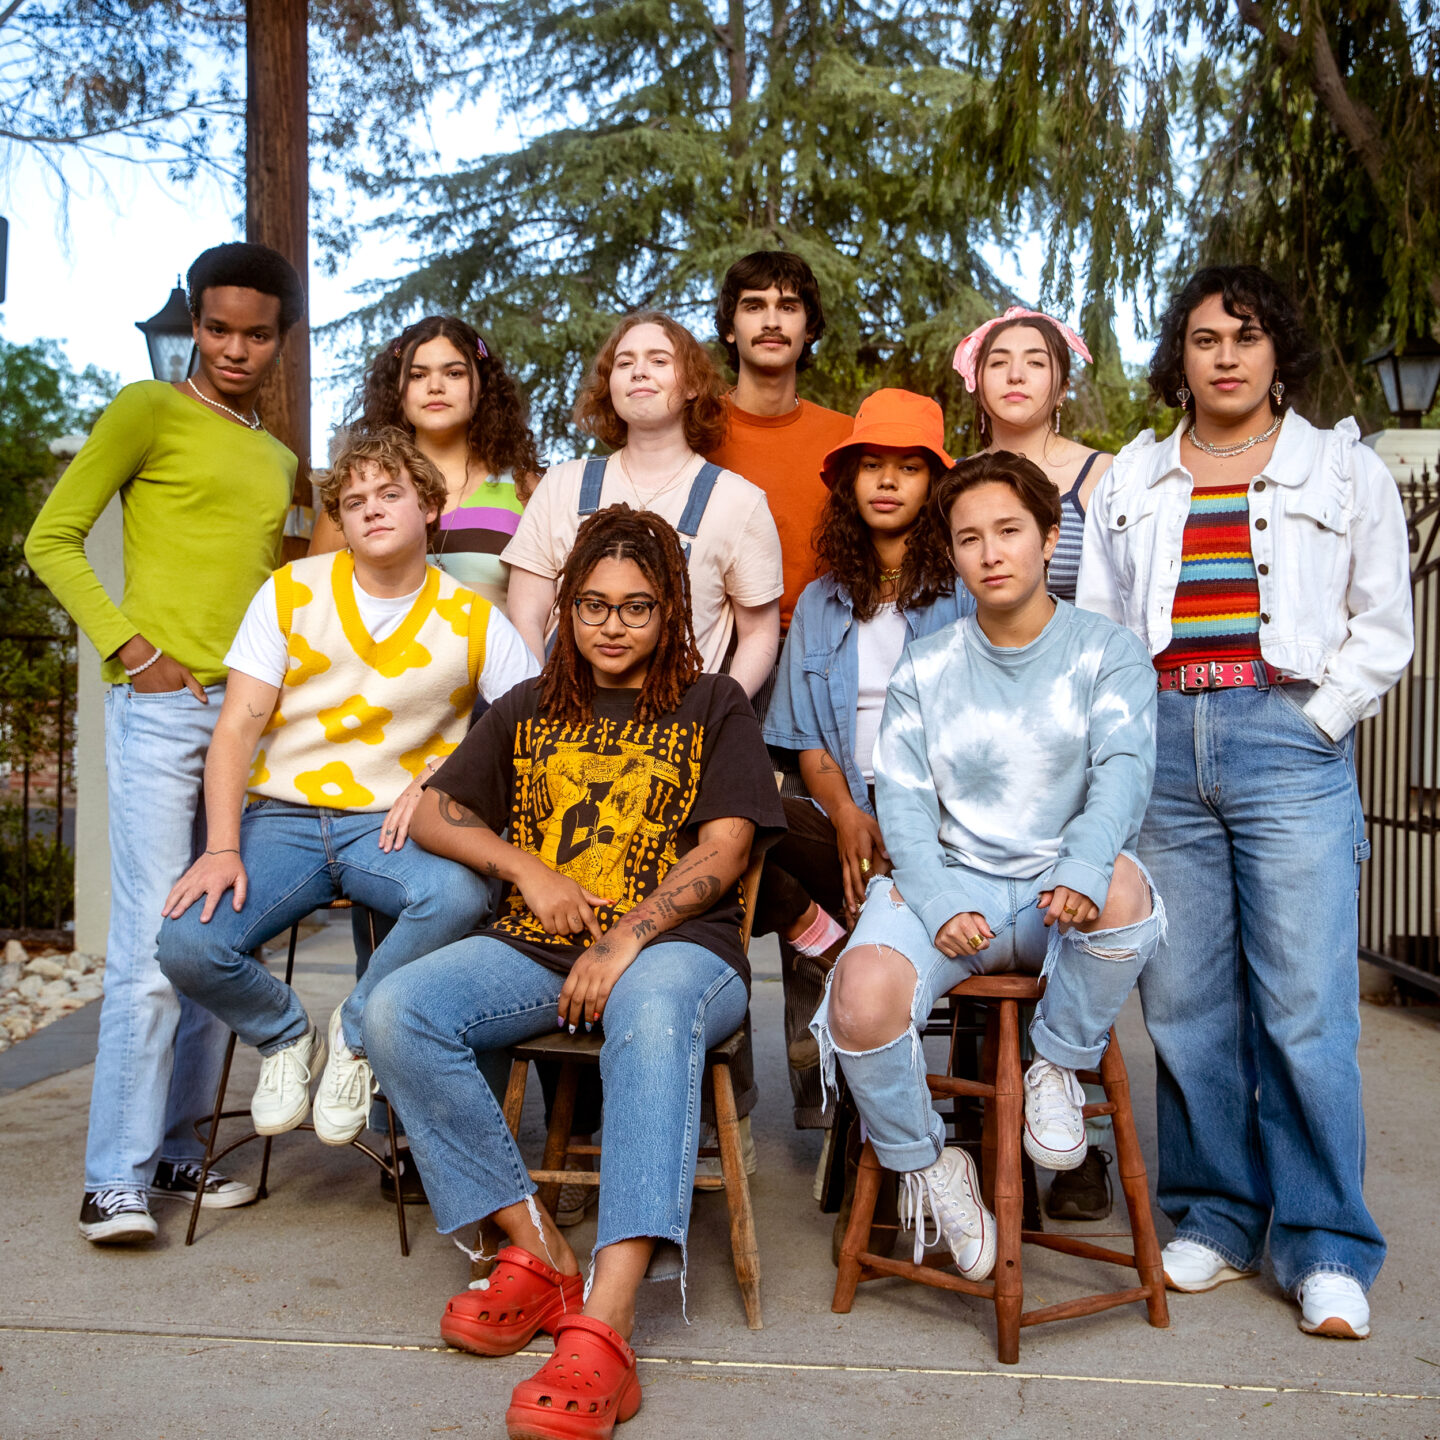 Group of LGBTQ young people standing together and looking into the camera